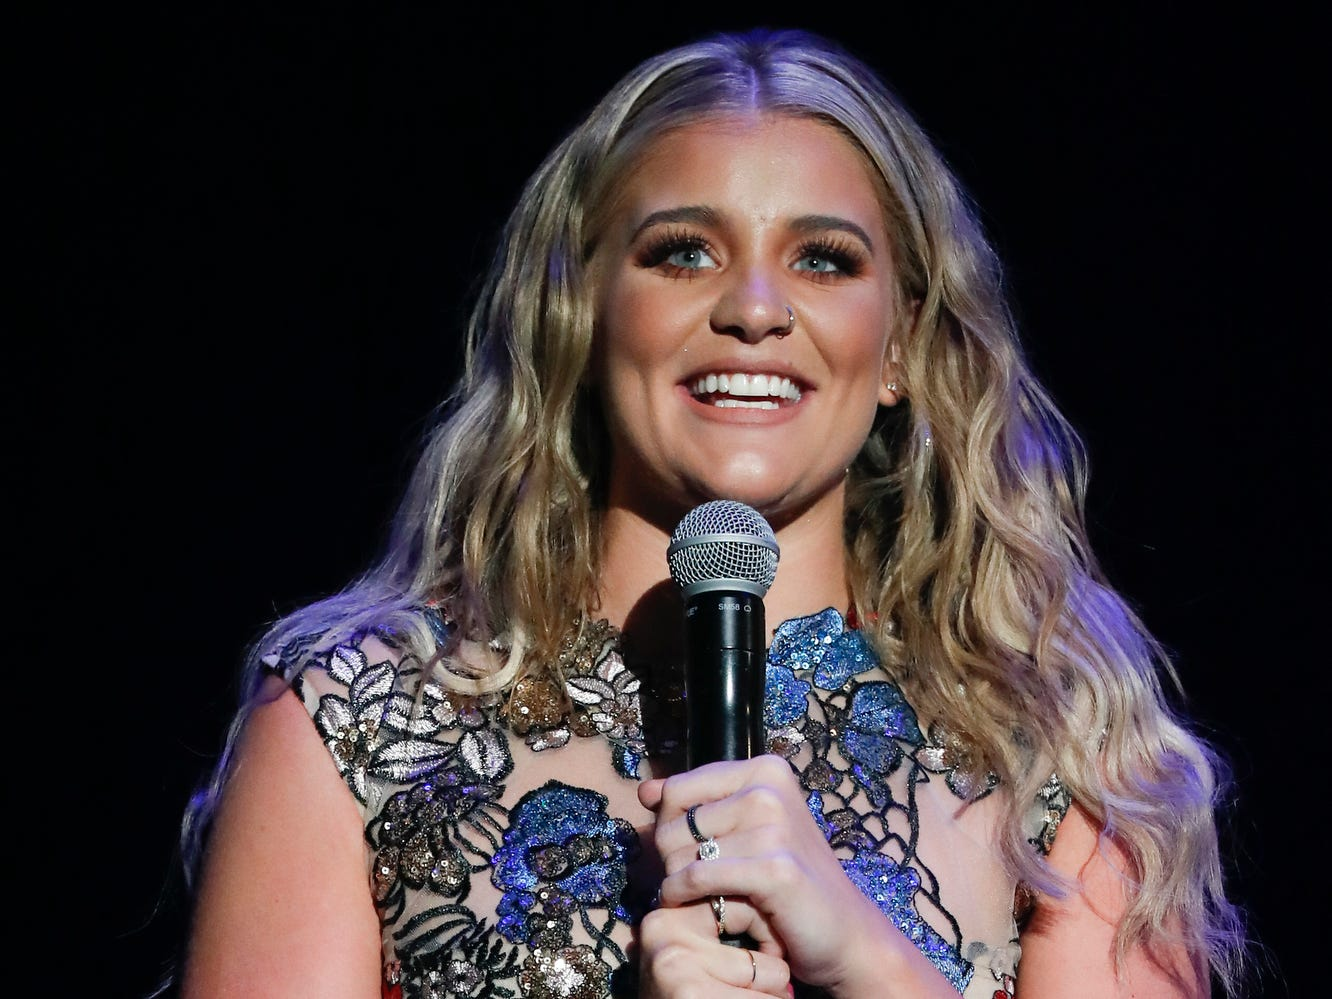 NOV. 16